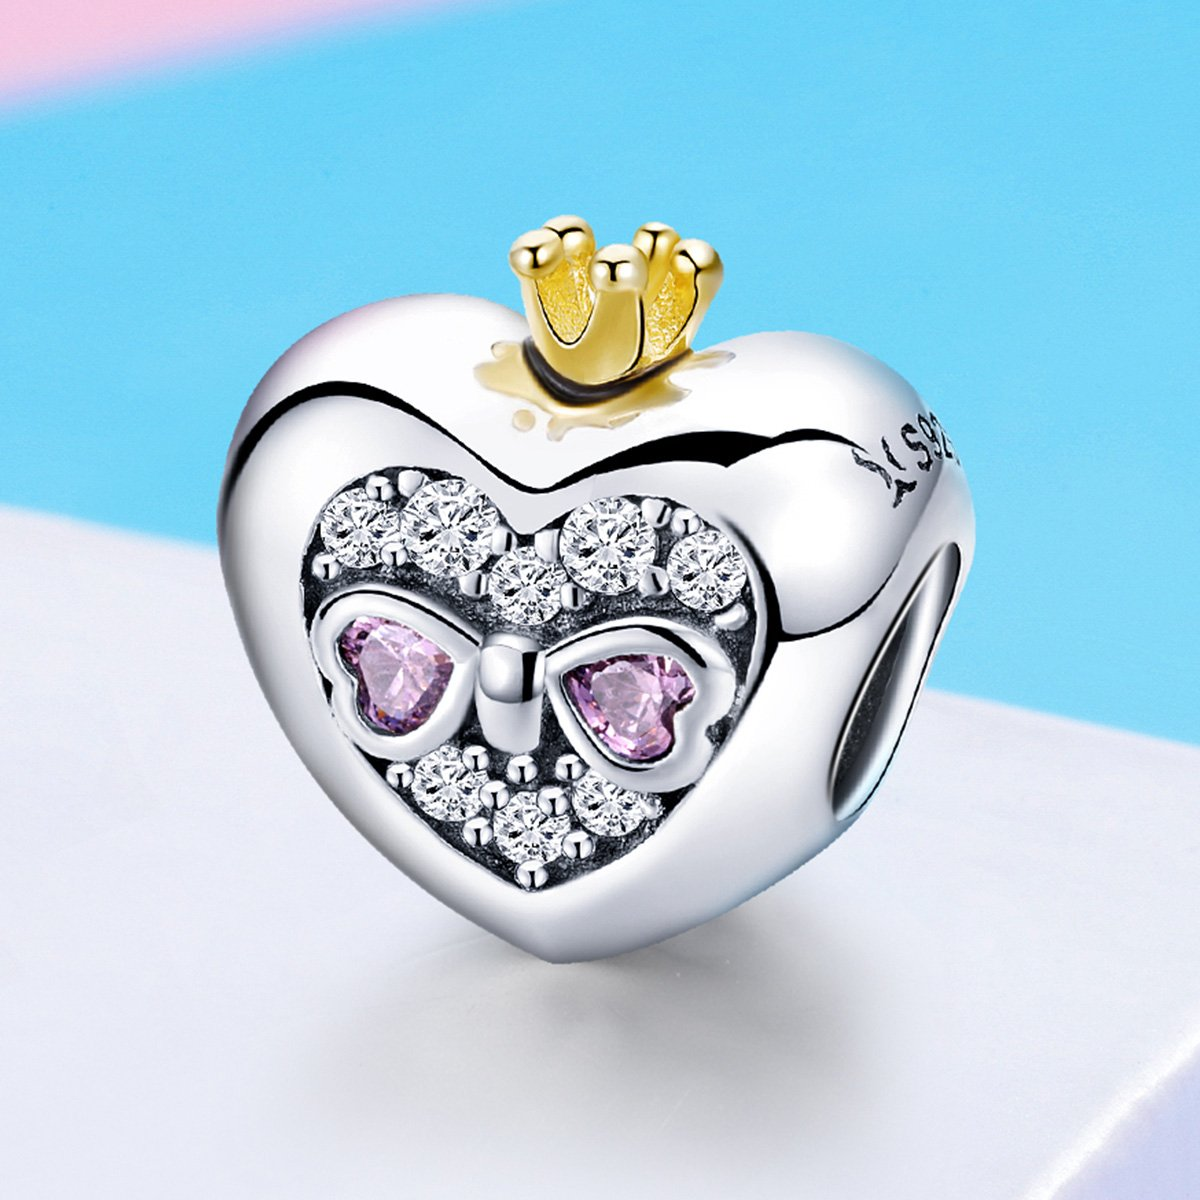 BAMOER Sterling Silver Heart of Princess Love CZ Bead Charm for DIY Snake Chain Bracelet by BAMOER (Image #2)